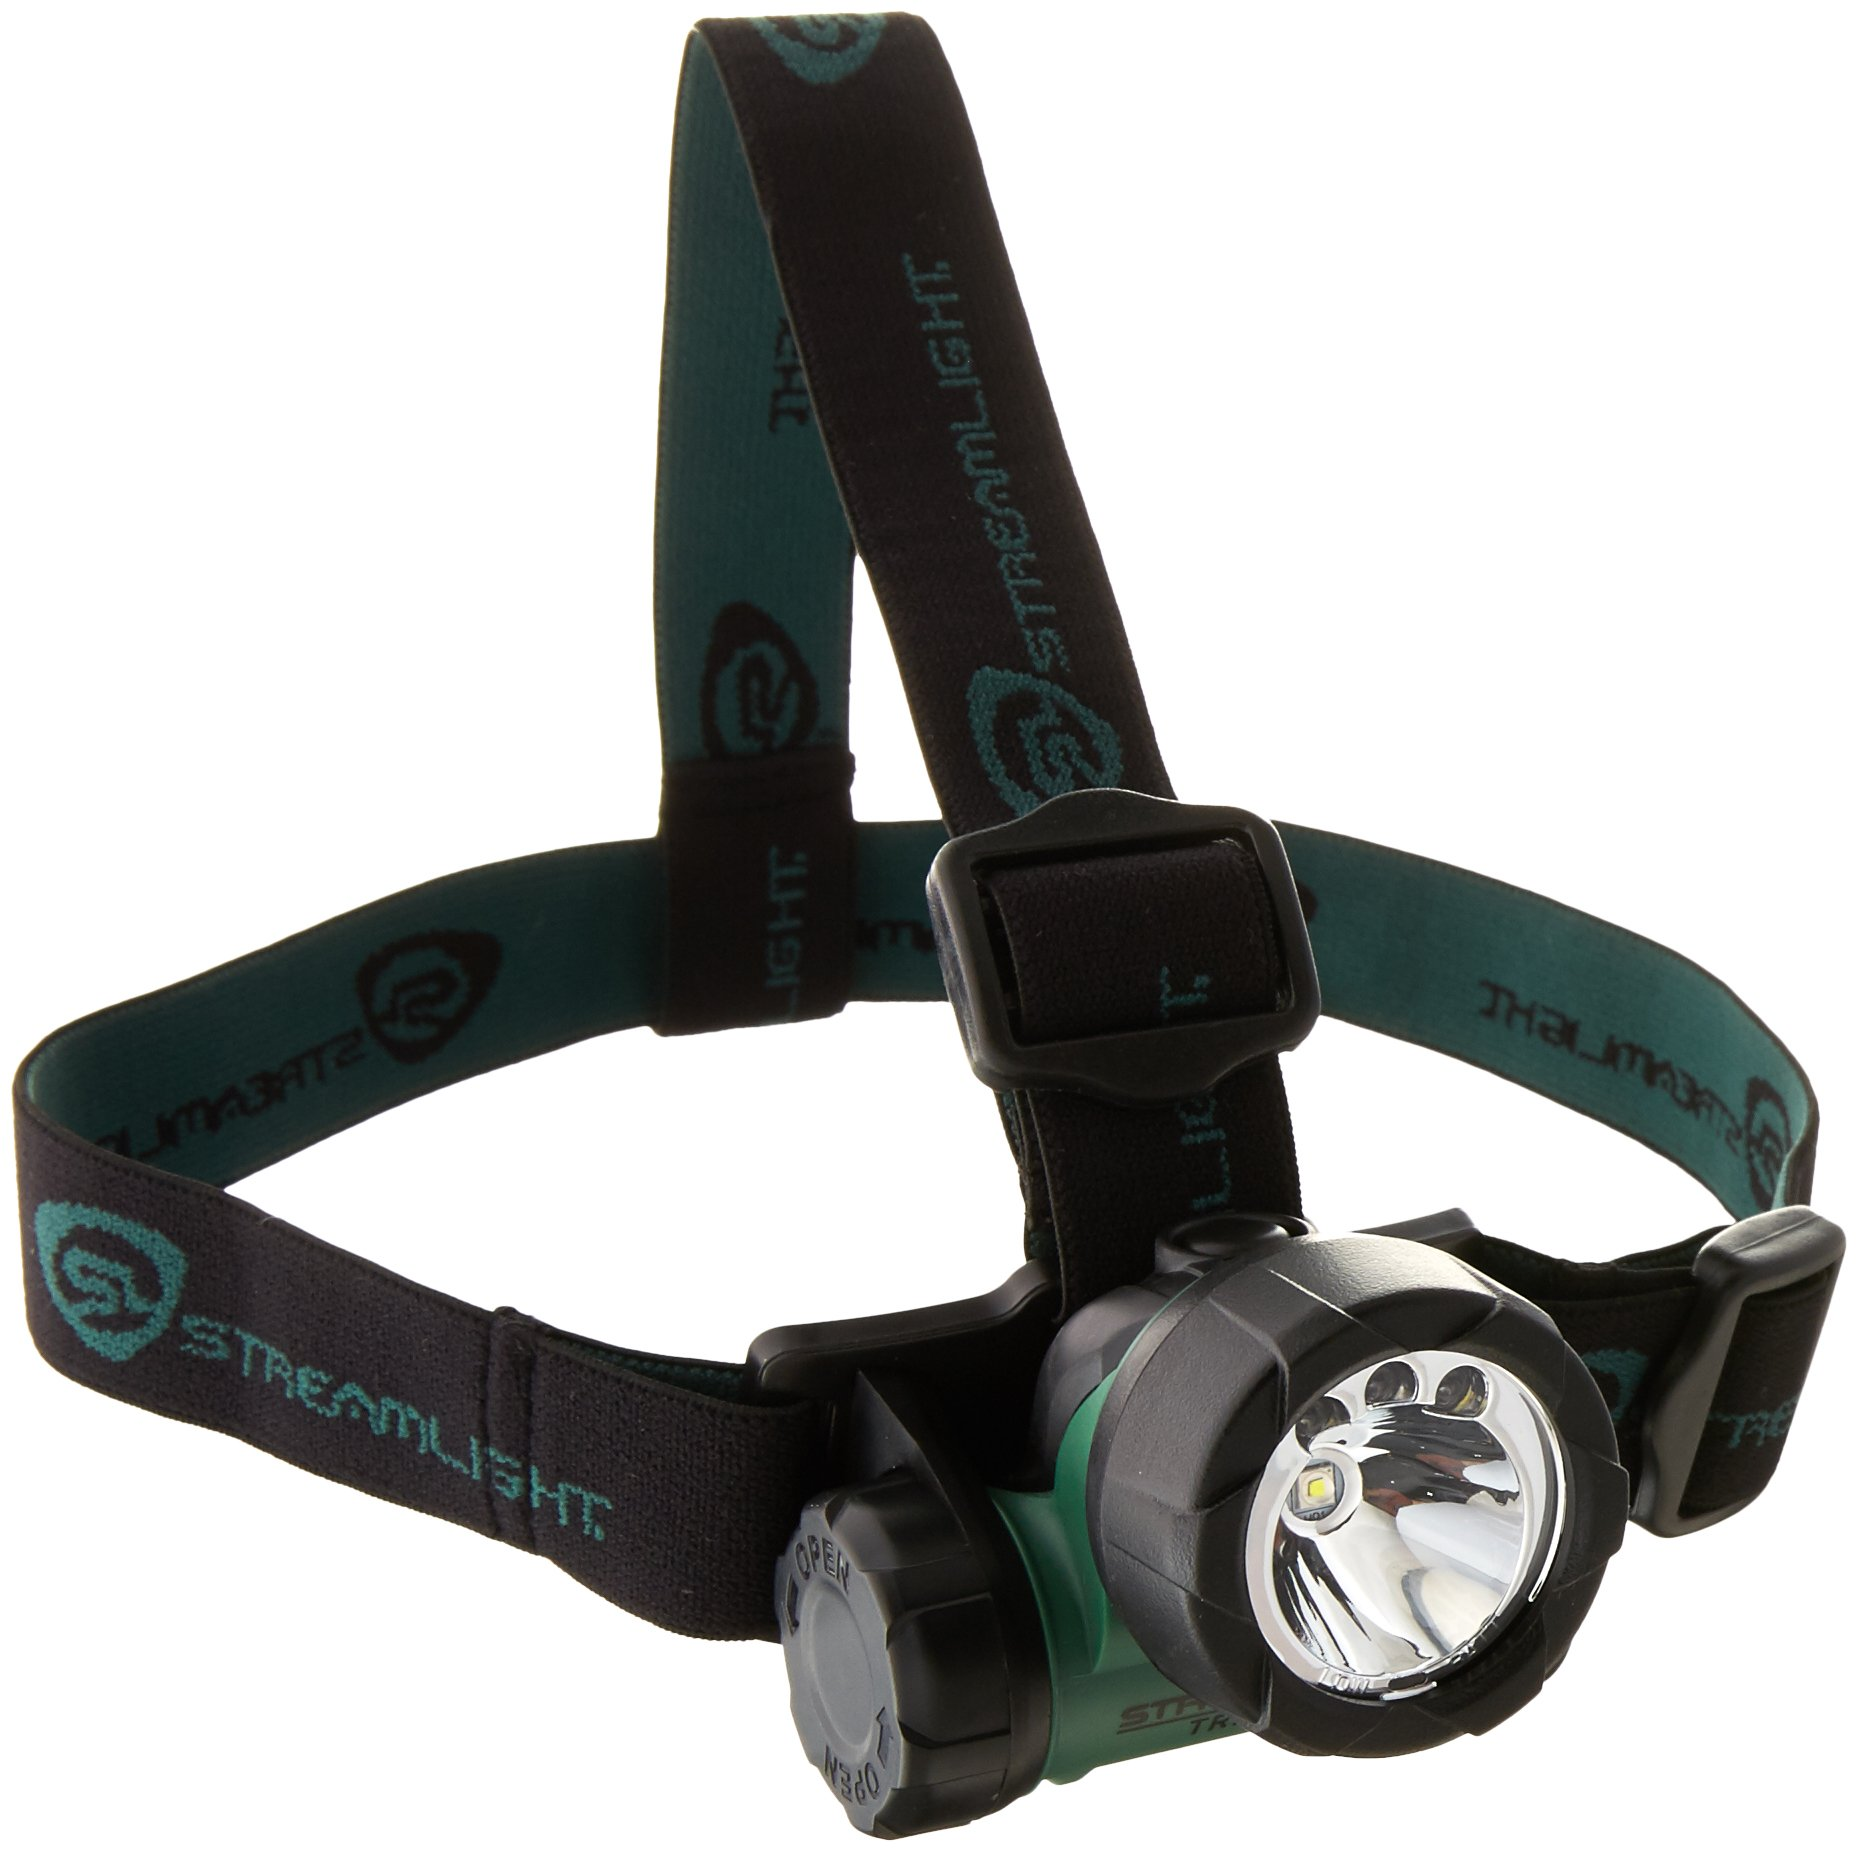 Streamlight 61051 Trident Headlight with 1 Green LED & 2 White LEDs (Batteries Included)